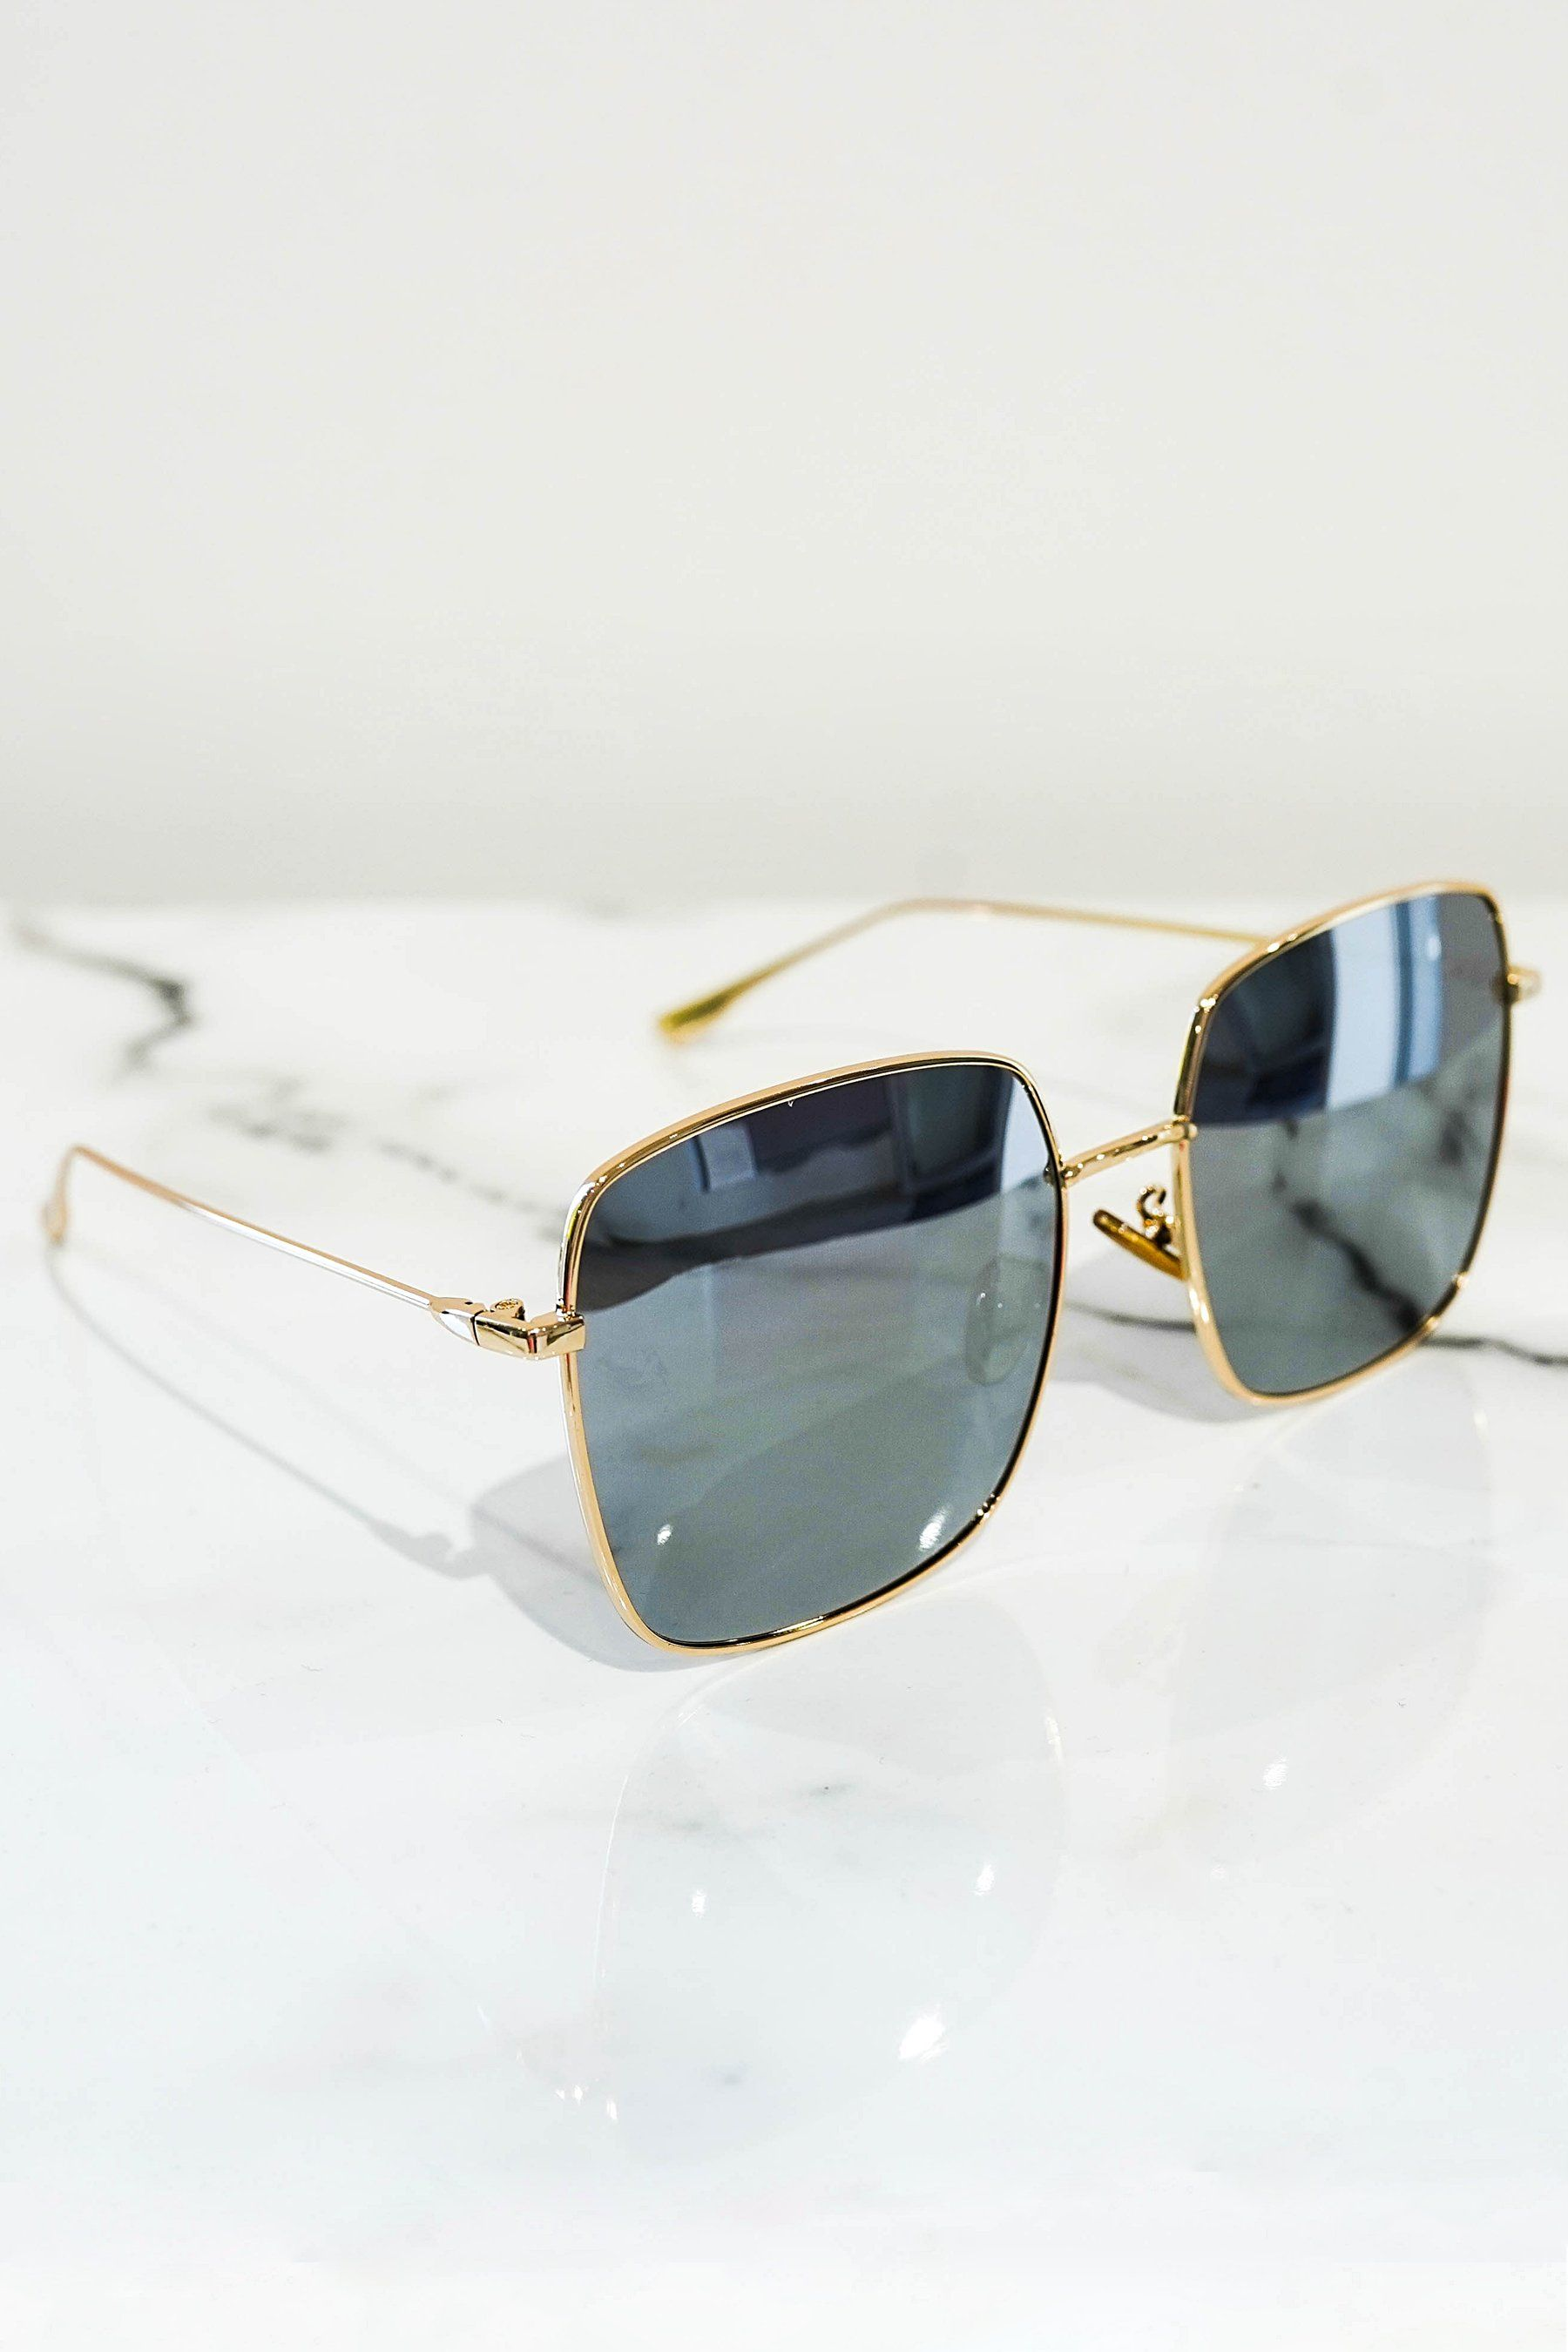 Squared sunglasses gold With mirrored lens